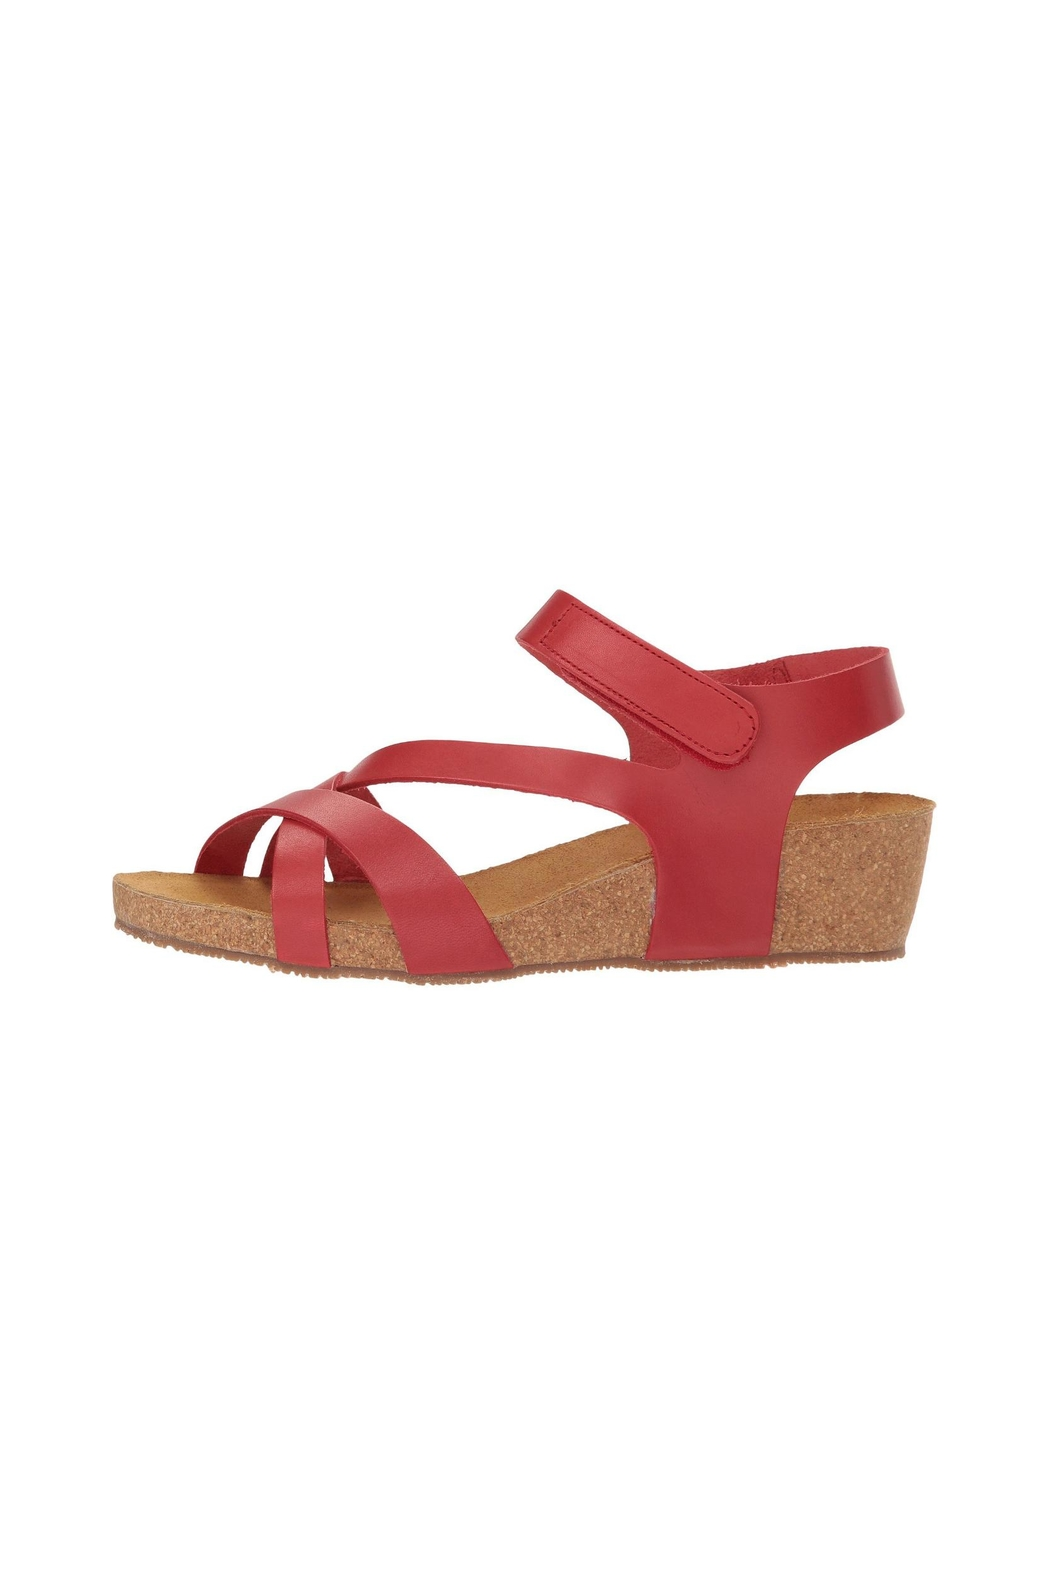 Eric Michael Havana Cork Wedge - Front Cropped Image